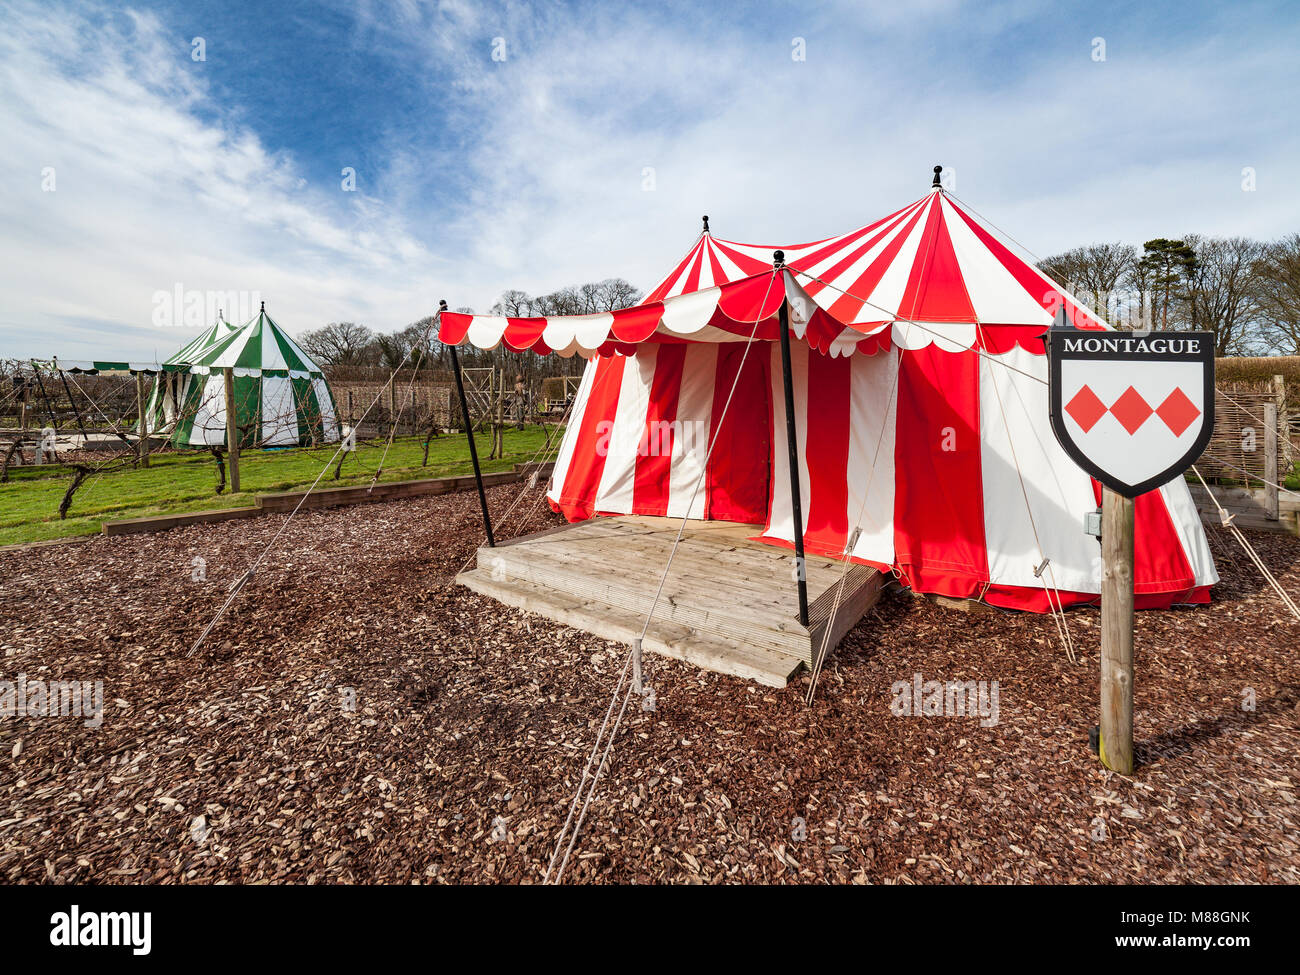 Glamping tents at leeds castle, Kent. - Stock Image